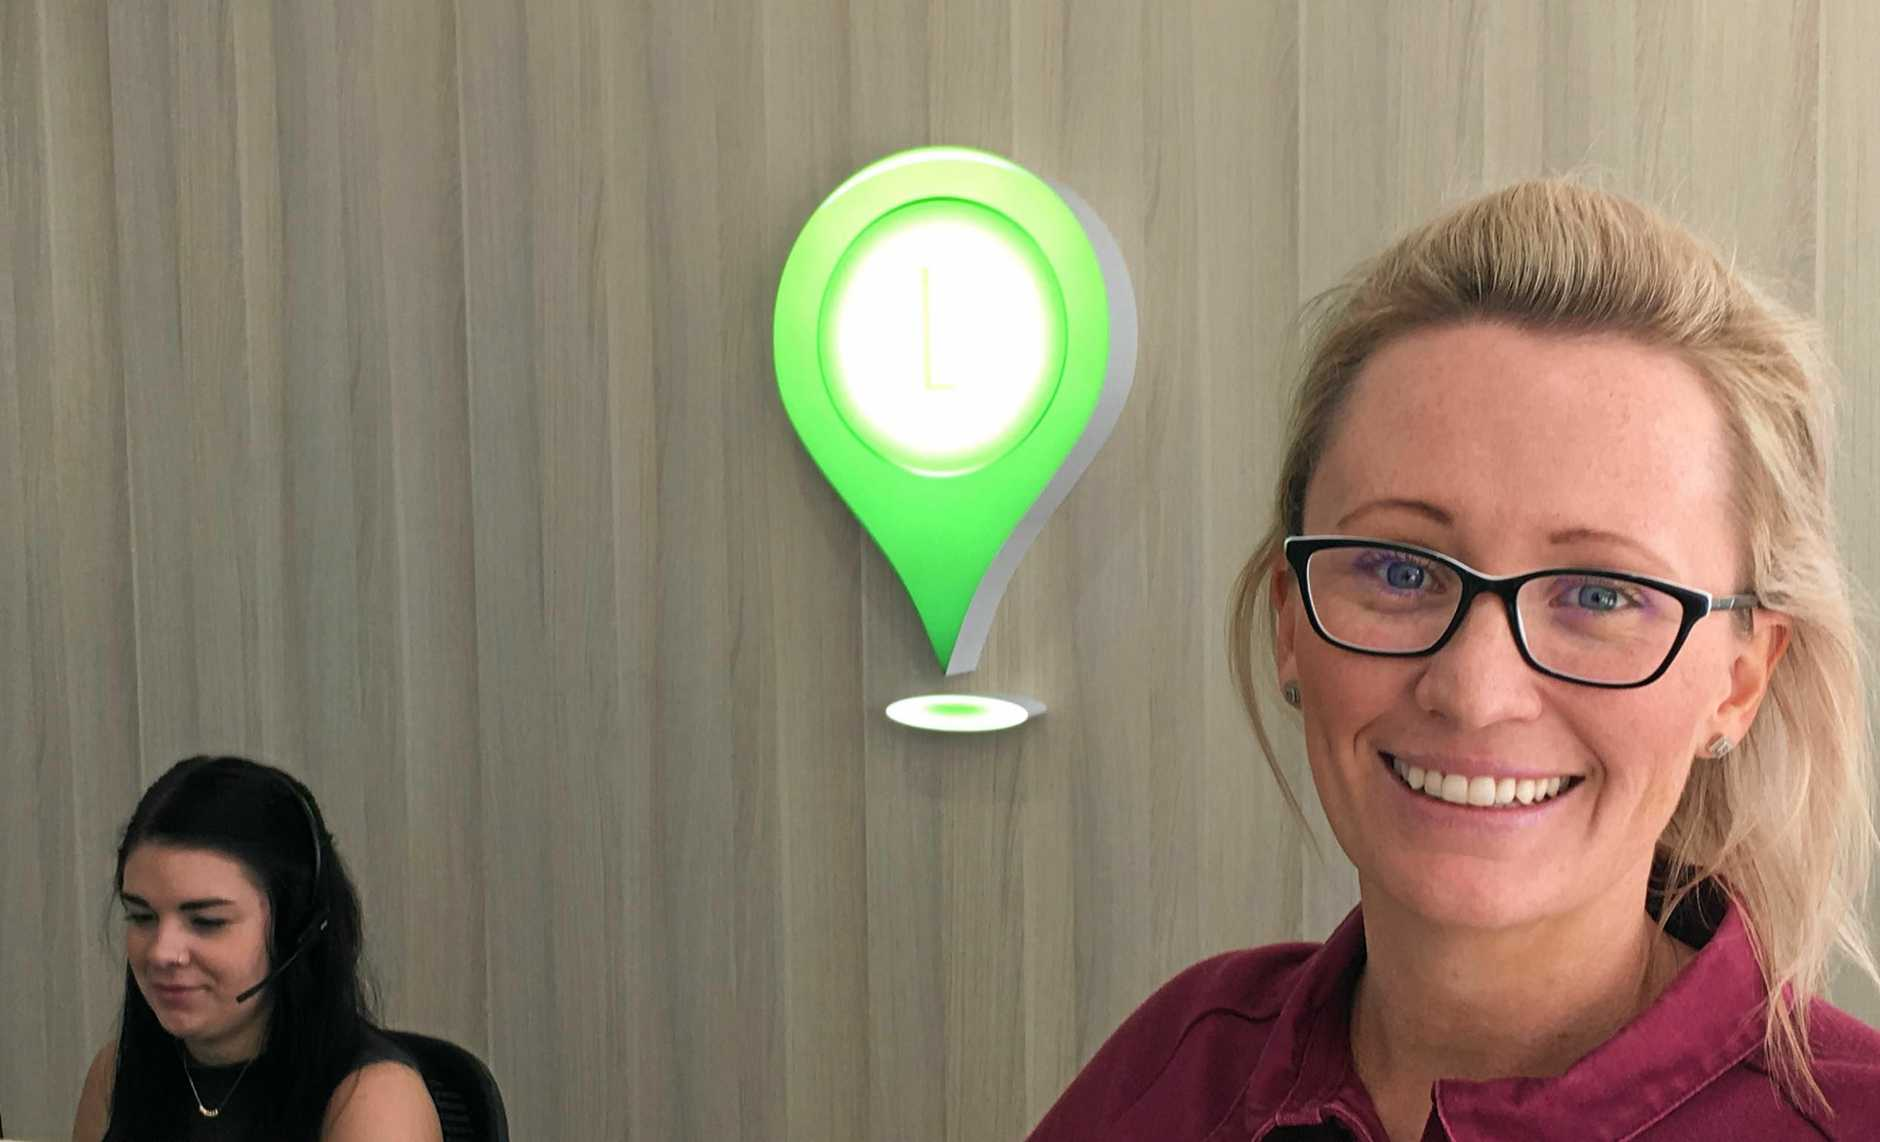 Locations Estate Agents director and property specialist Alicia Williams in their new premises at the GEA City Arcade building on Goondoon St Gladstone.